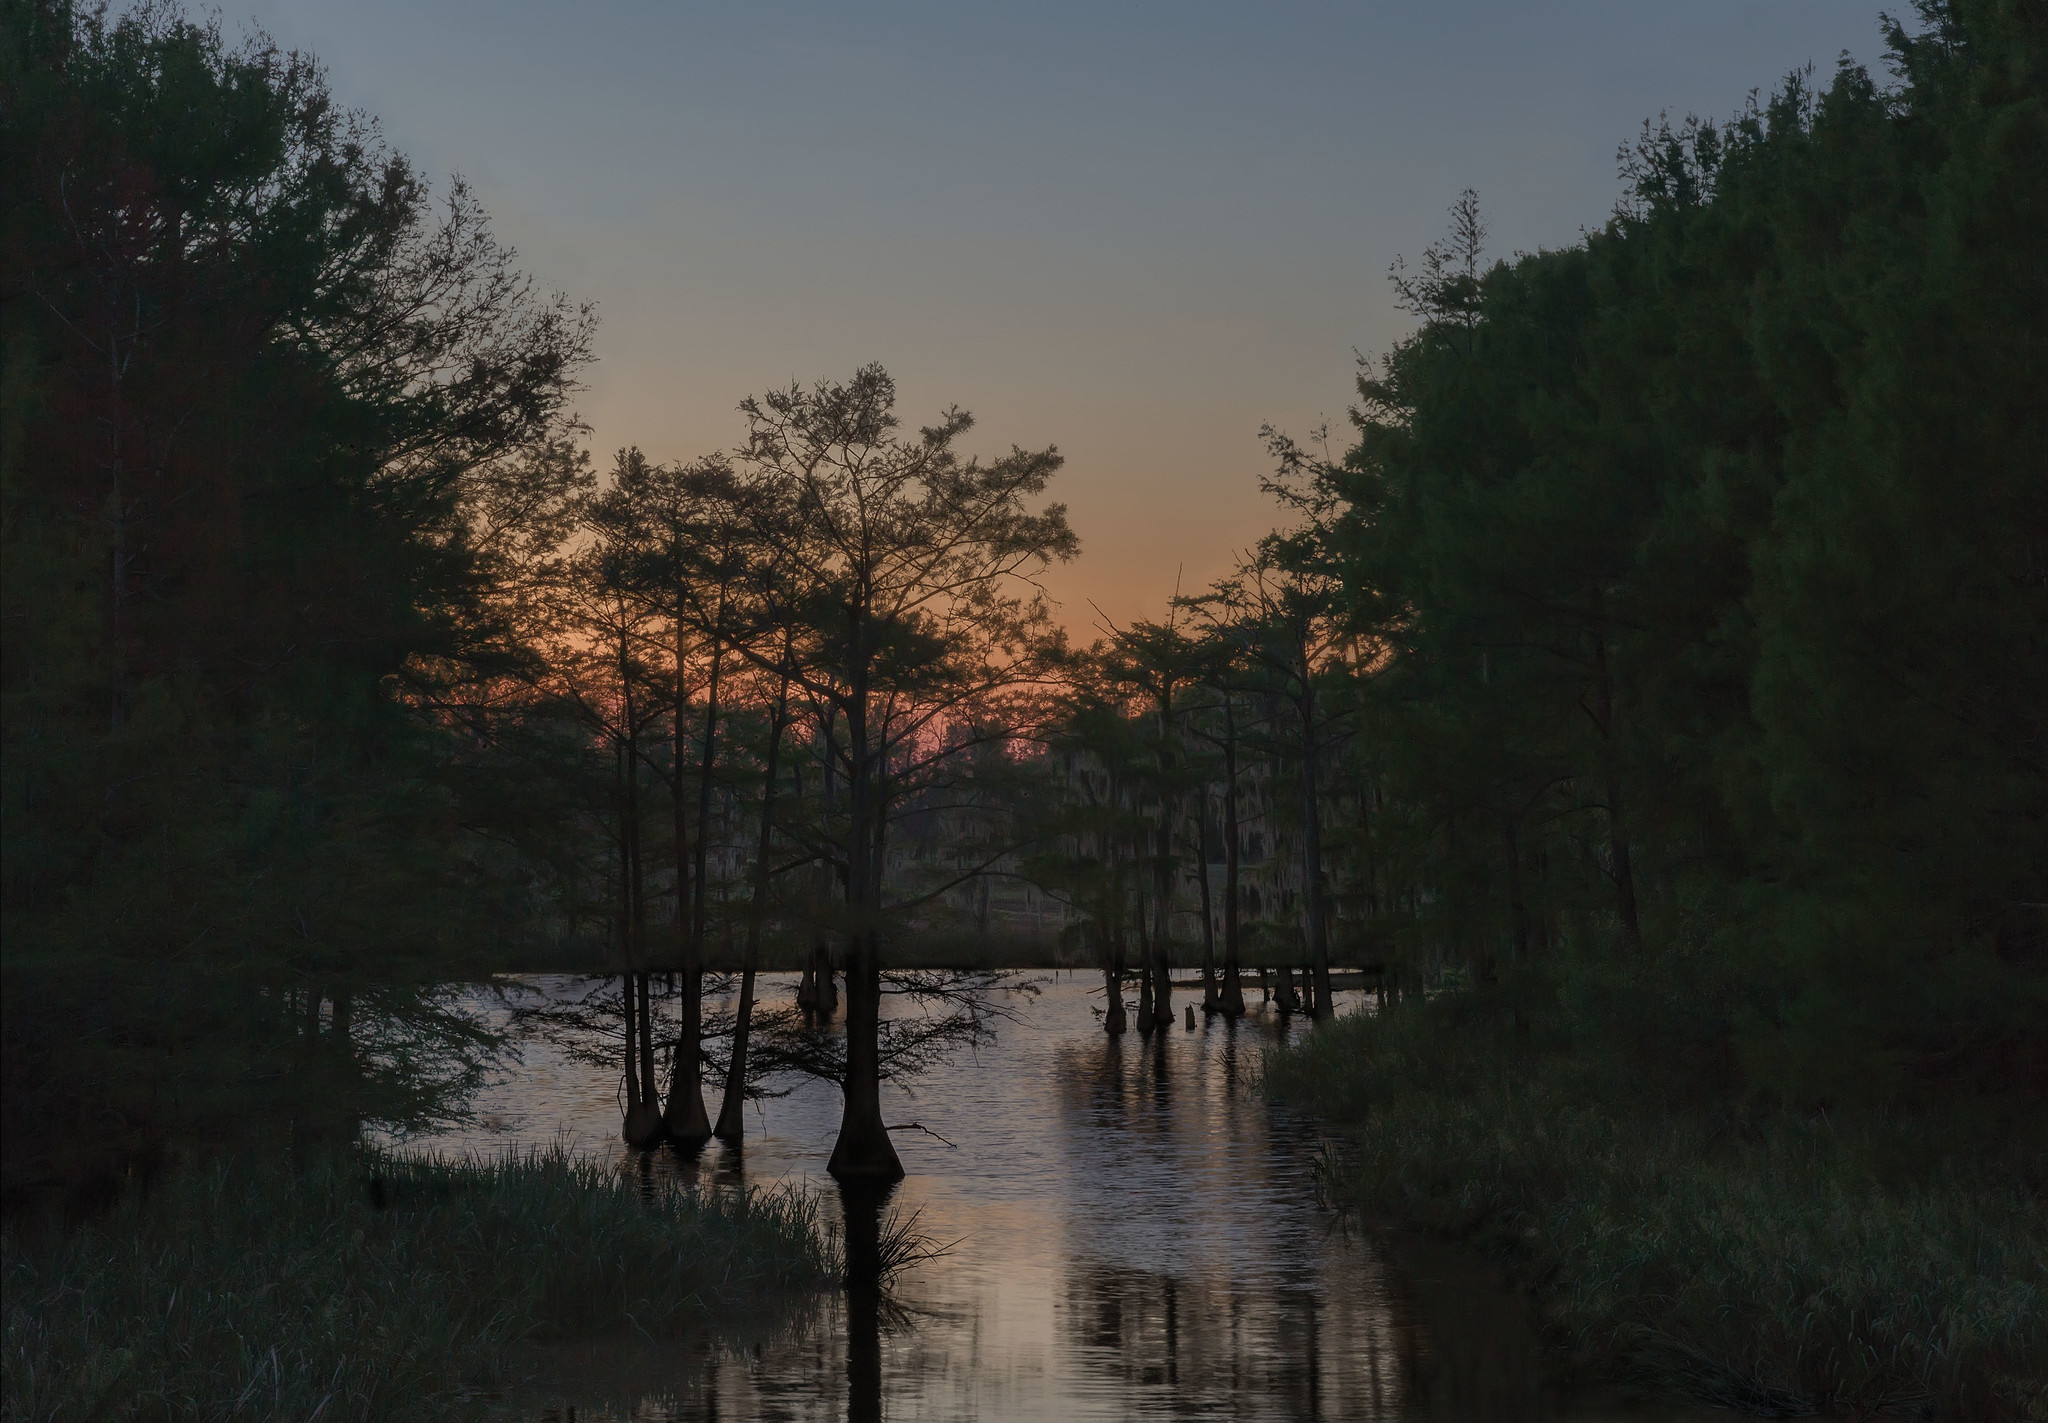 a powerful symbol of resistance the underground railroad inspires grant parish louisiana from jeanine michna bales in through